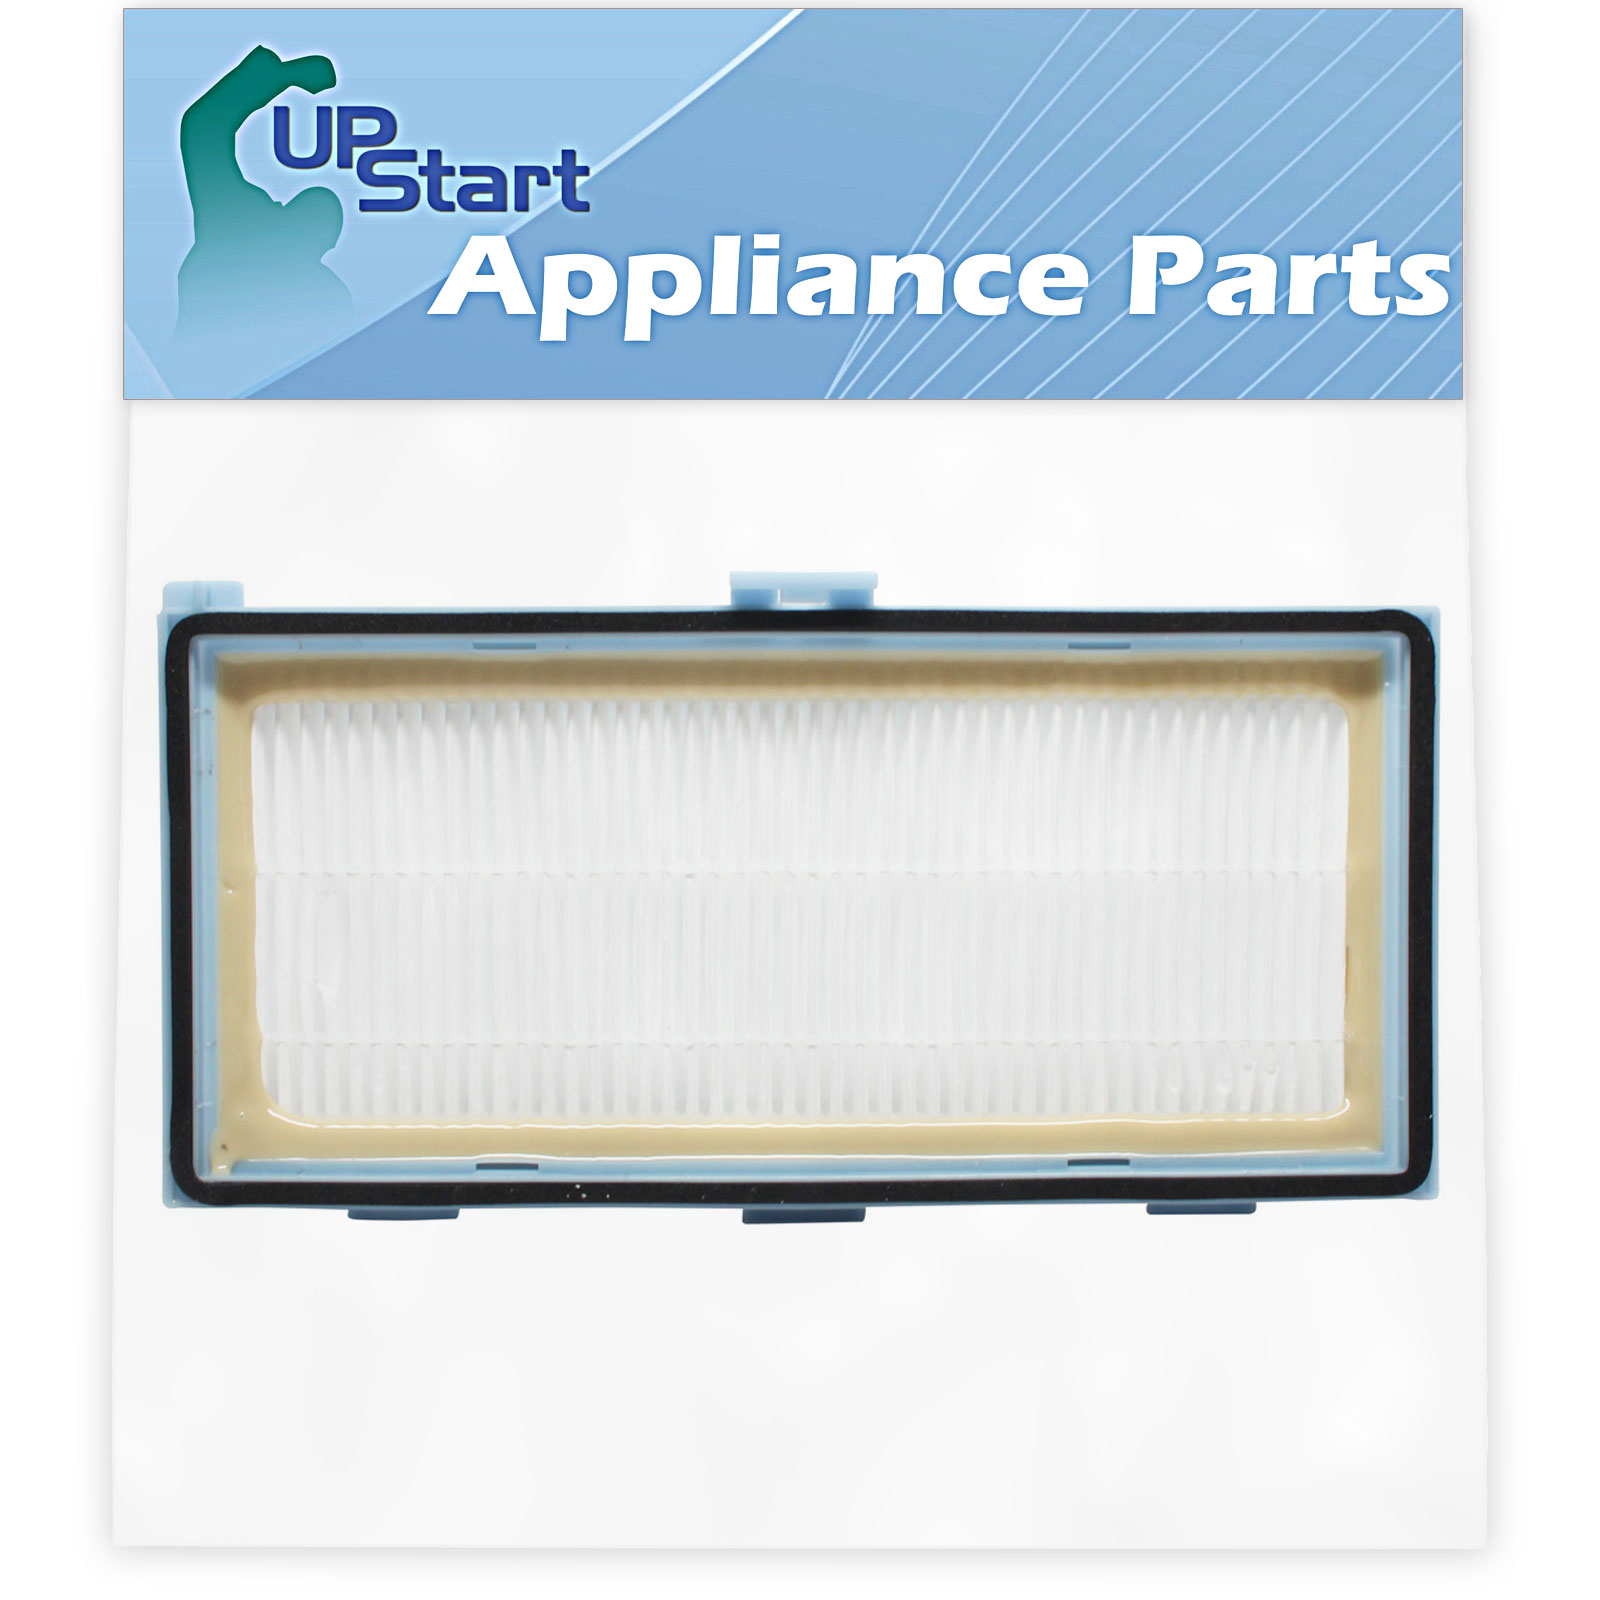 Replacement Miele S514i Solaris Electro Vacuum HEPA Filter - Compatible Miele SF-AH 30, SF-HA 30, AH30 HEPA Filter - image 4 de 4